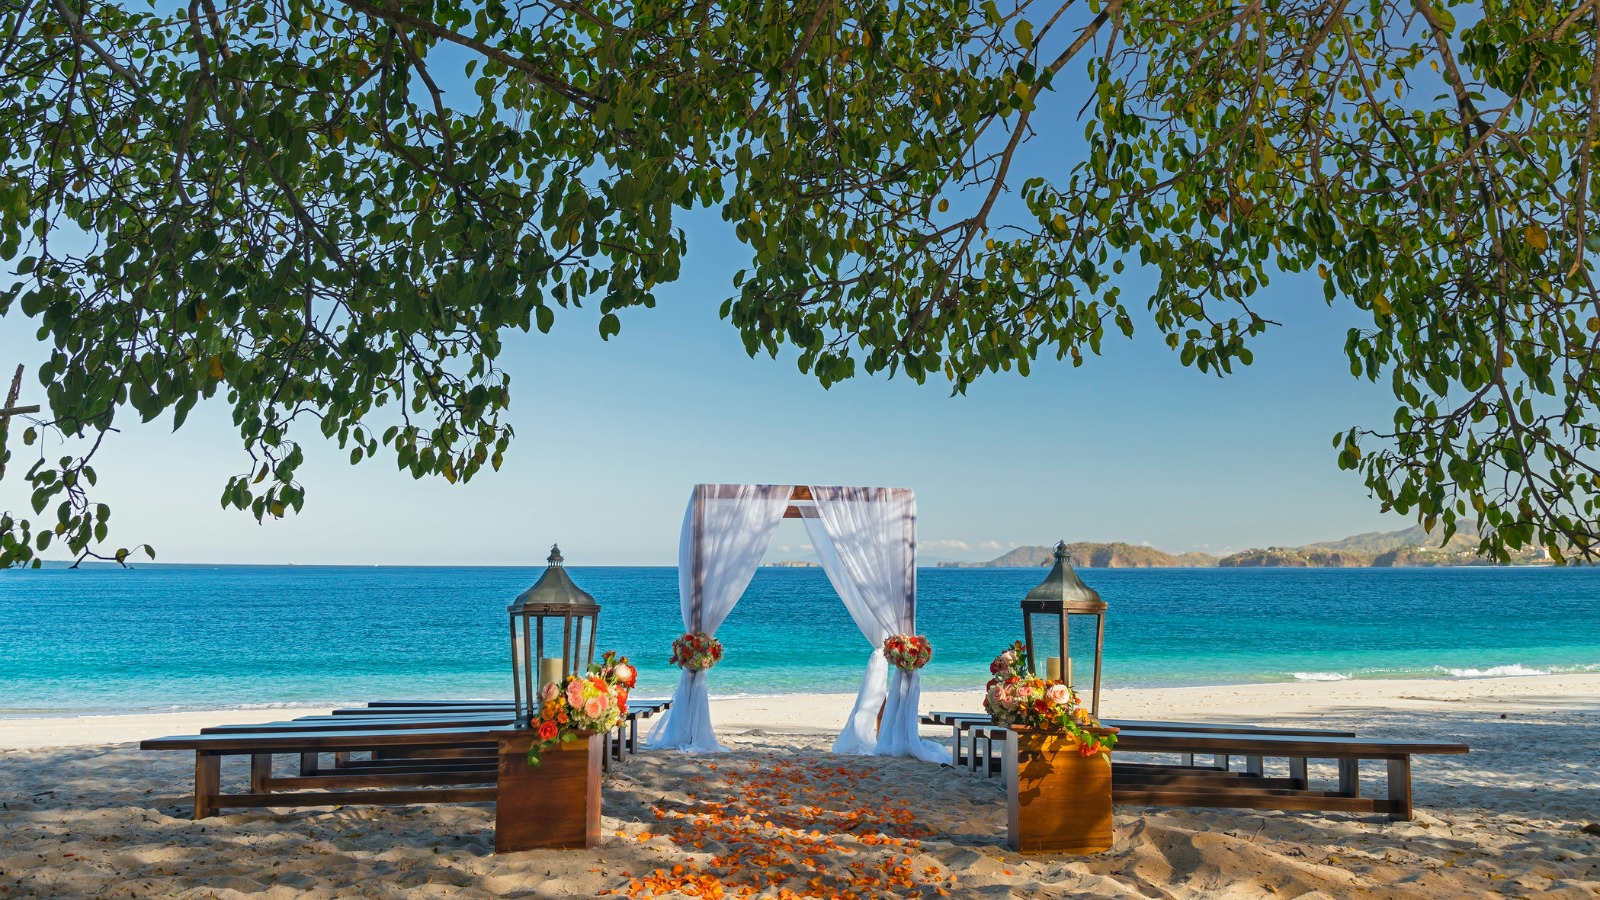 The Westin Golf Resort & Spa, Playa Conchal - Beach Ceremony Setup